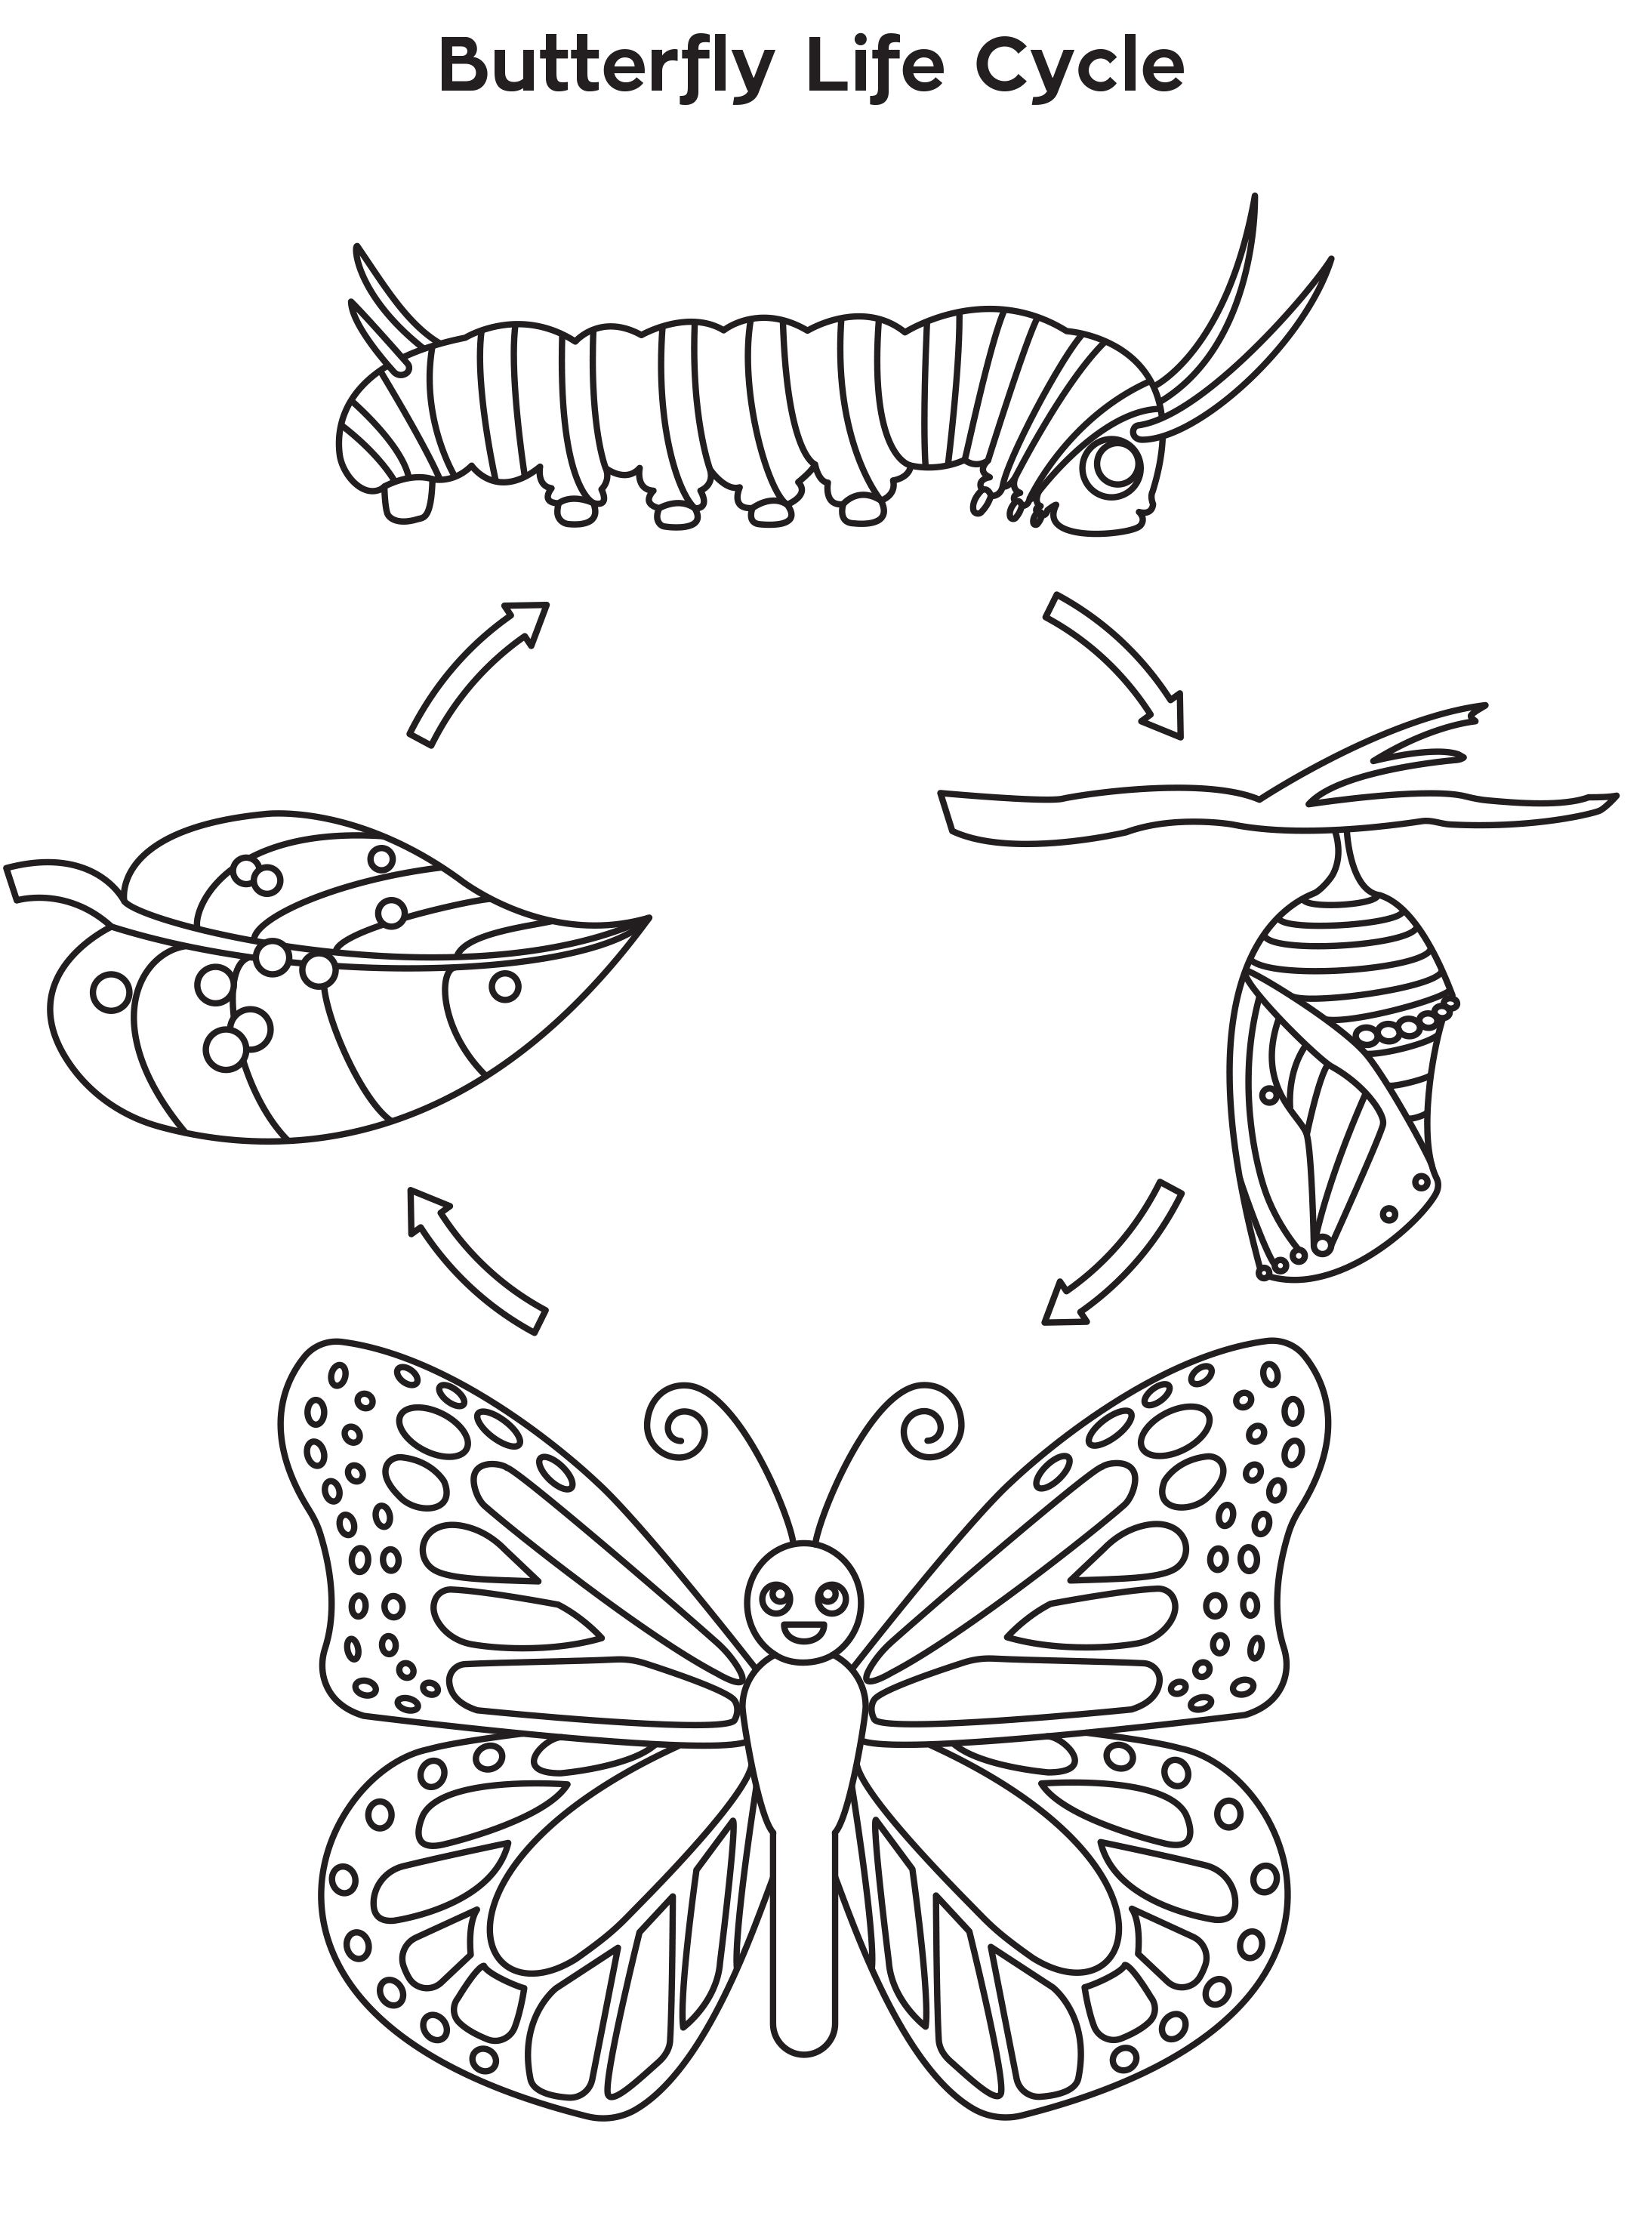 Meeting 6 Butterfly Life Cycle Coloring Sheet Butterfly Life